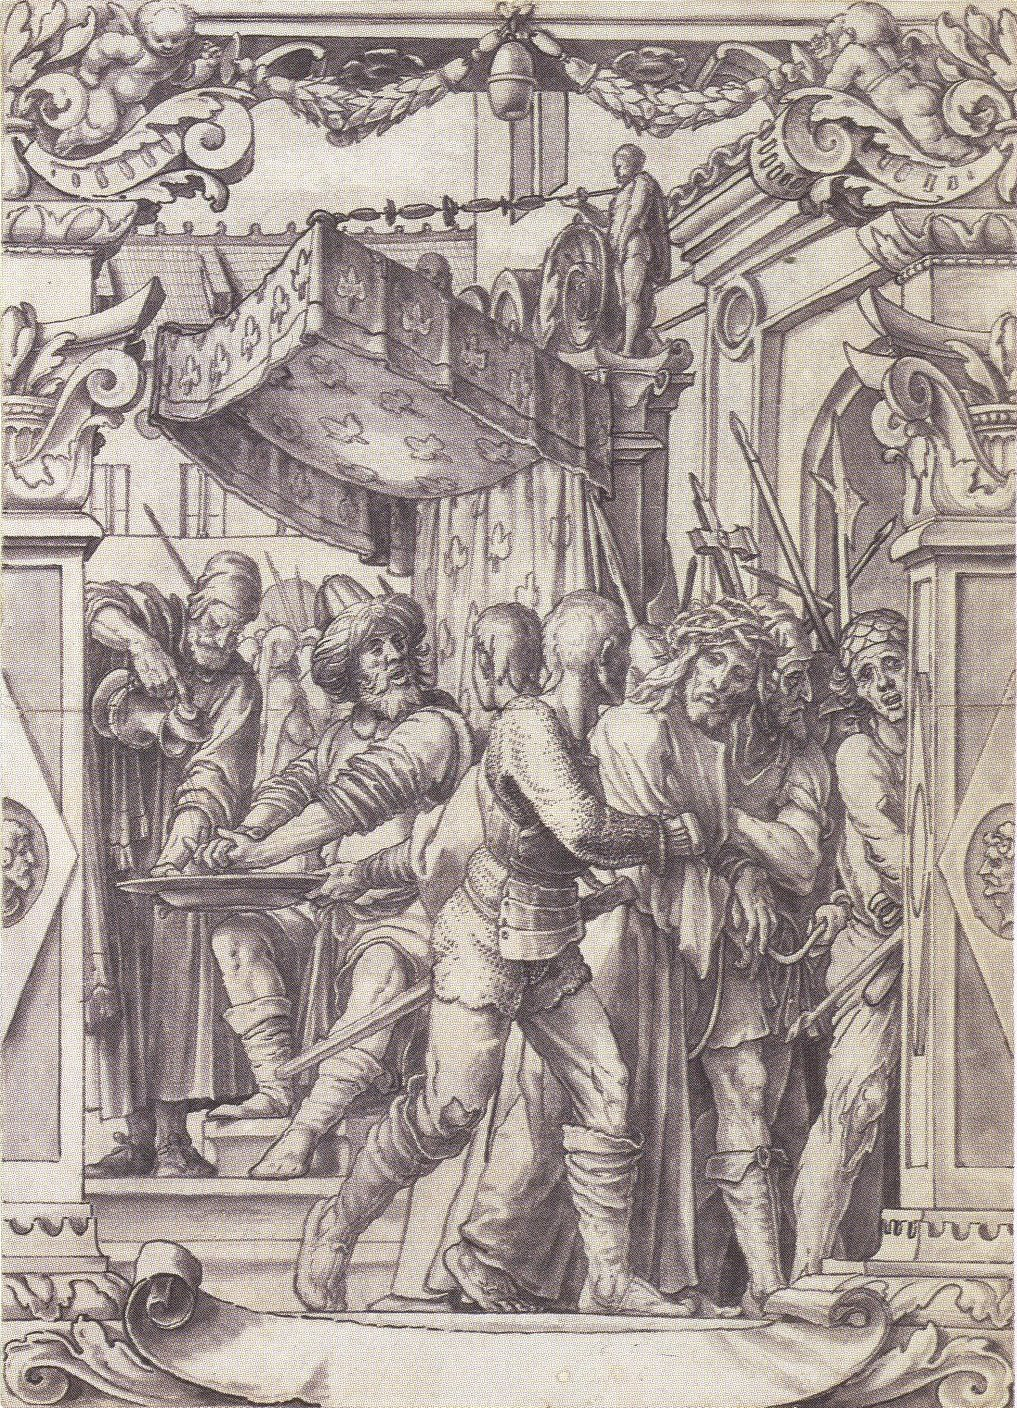 Pilate Washing his Hands, design for a stained glass window. c.1528